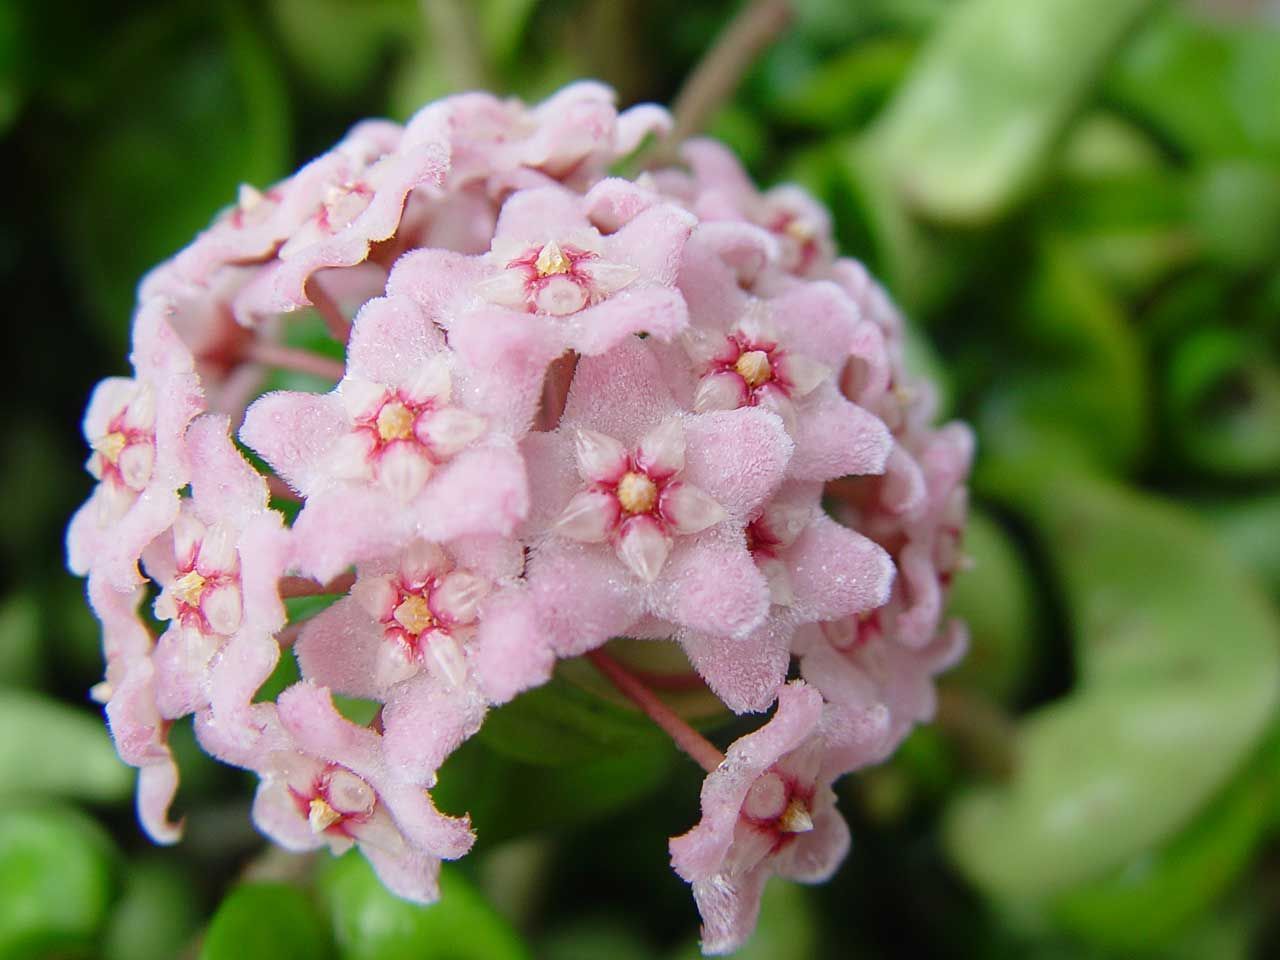 Small star shaped flowers flower shop near me flower shop elderflower power rooted food notice tiny star shaped flowers this sambucus nigra nbsp from europe has larger clusters white star flower images flower mightylinksfo